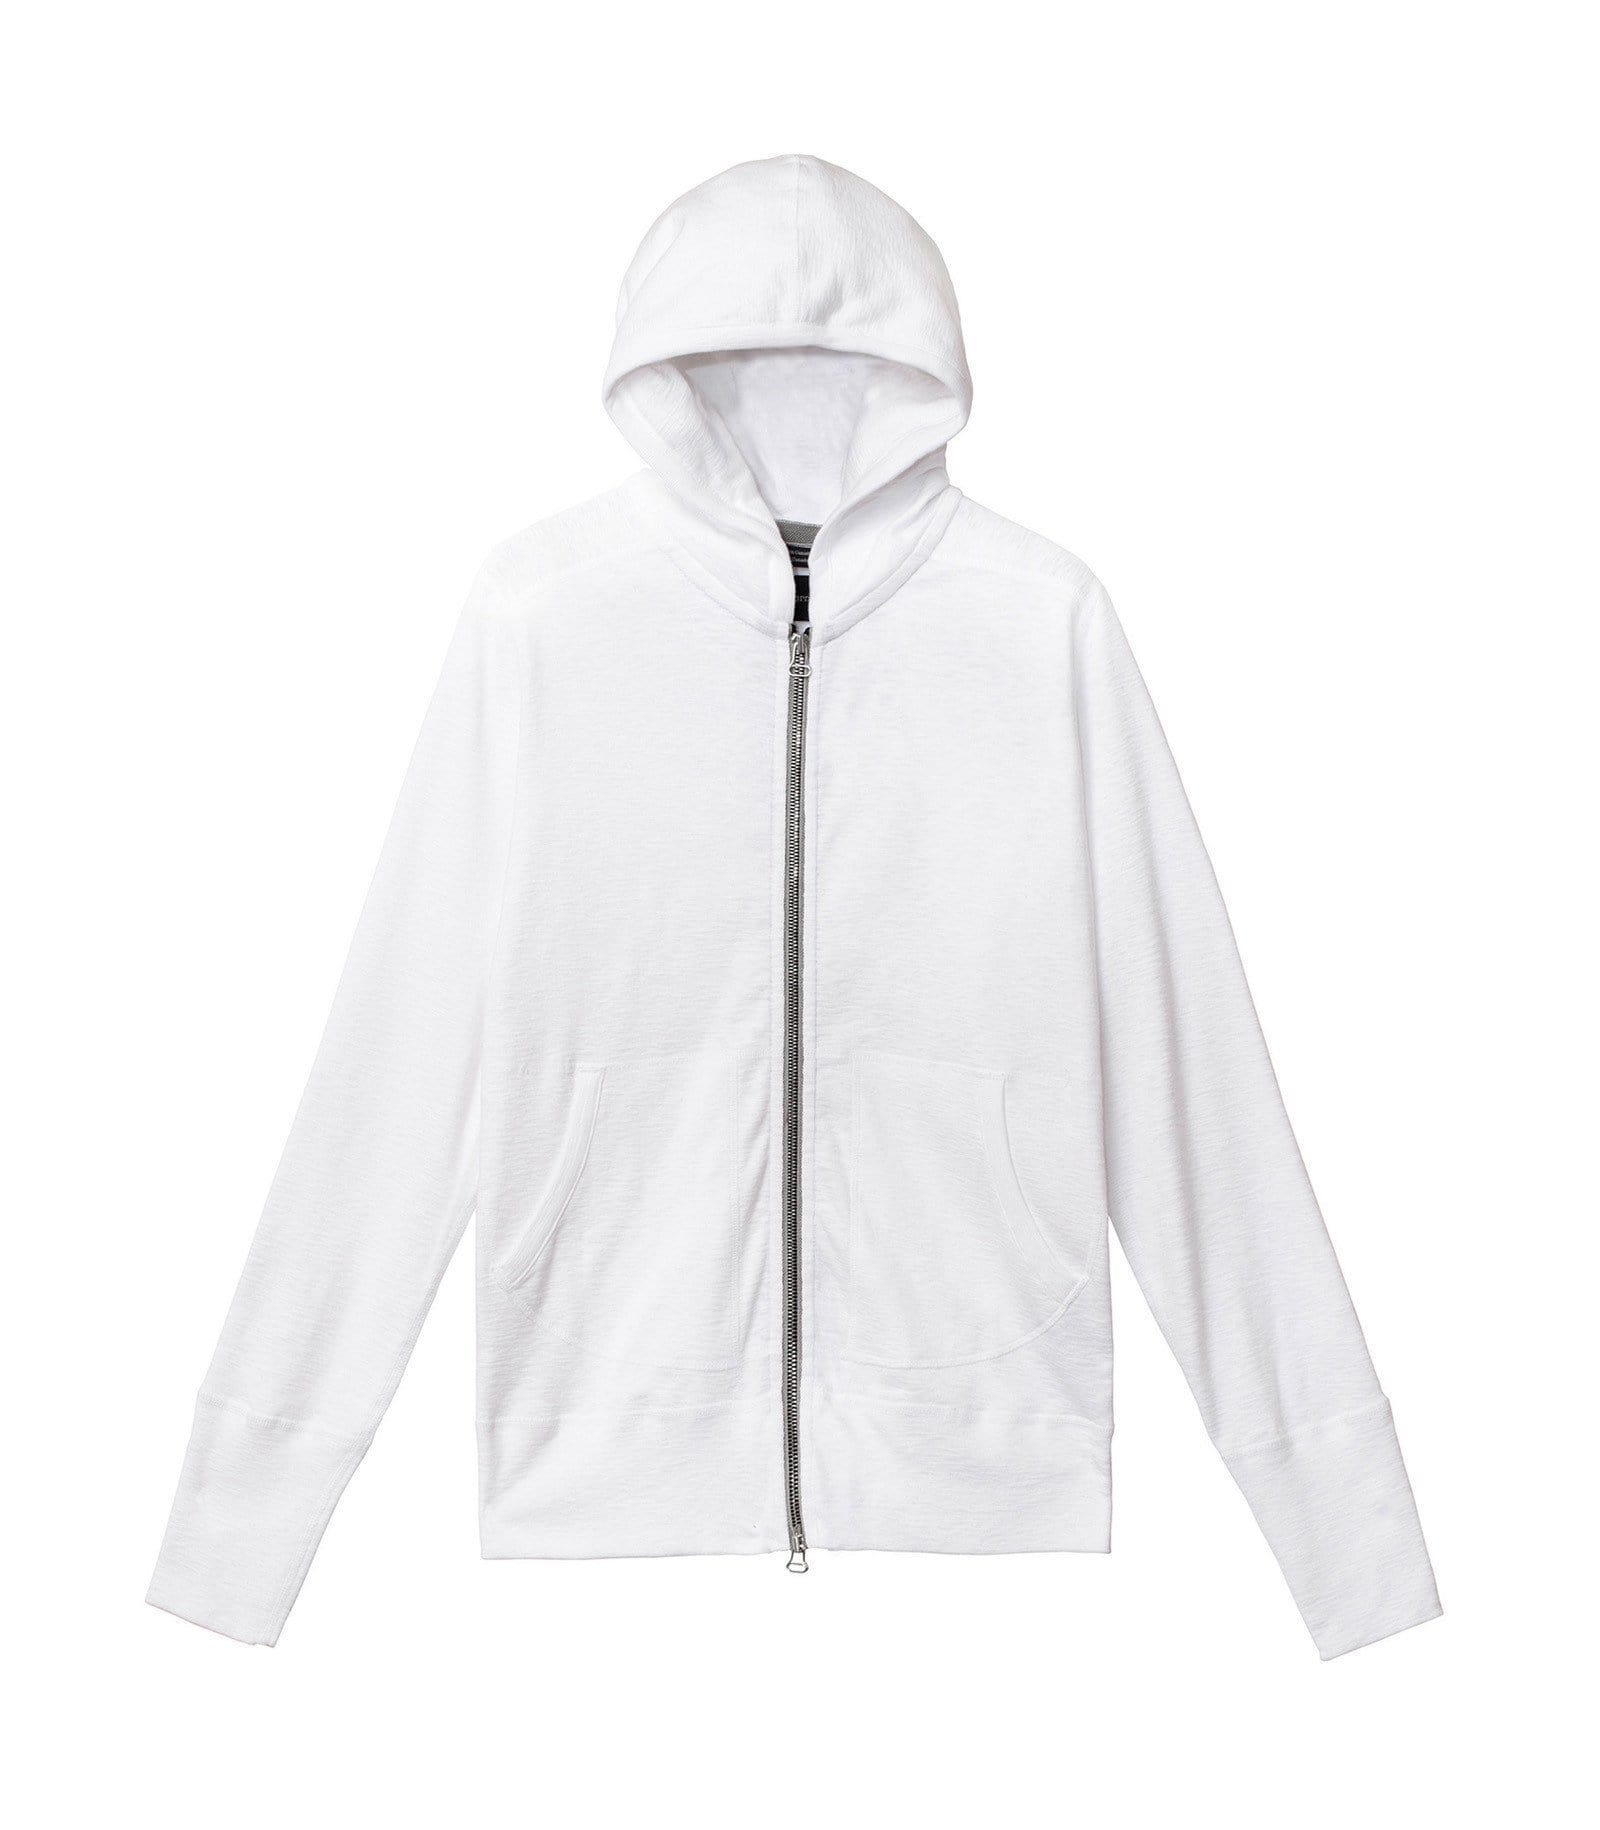 1X1 SLUB RIB ZIP FRONT HOODIE MENS SOFTGOODS WINGS+HORNS WHITE XL